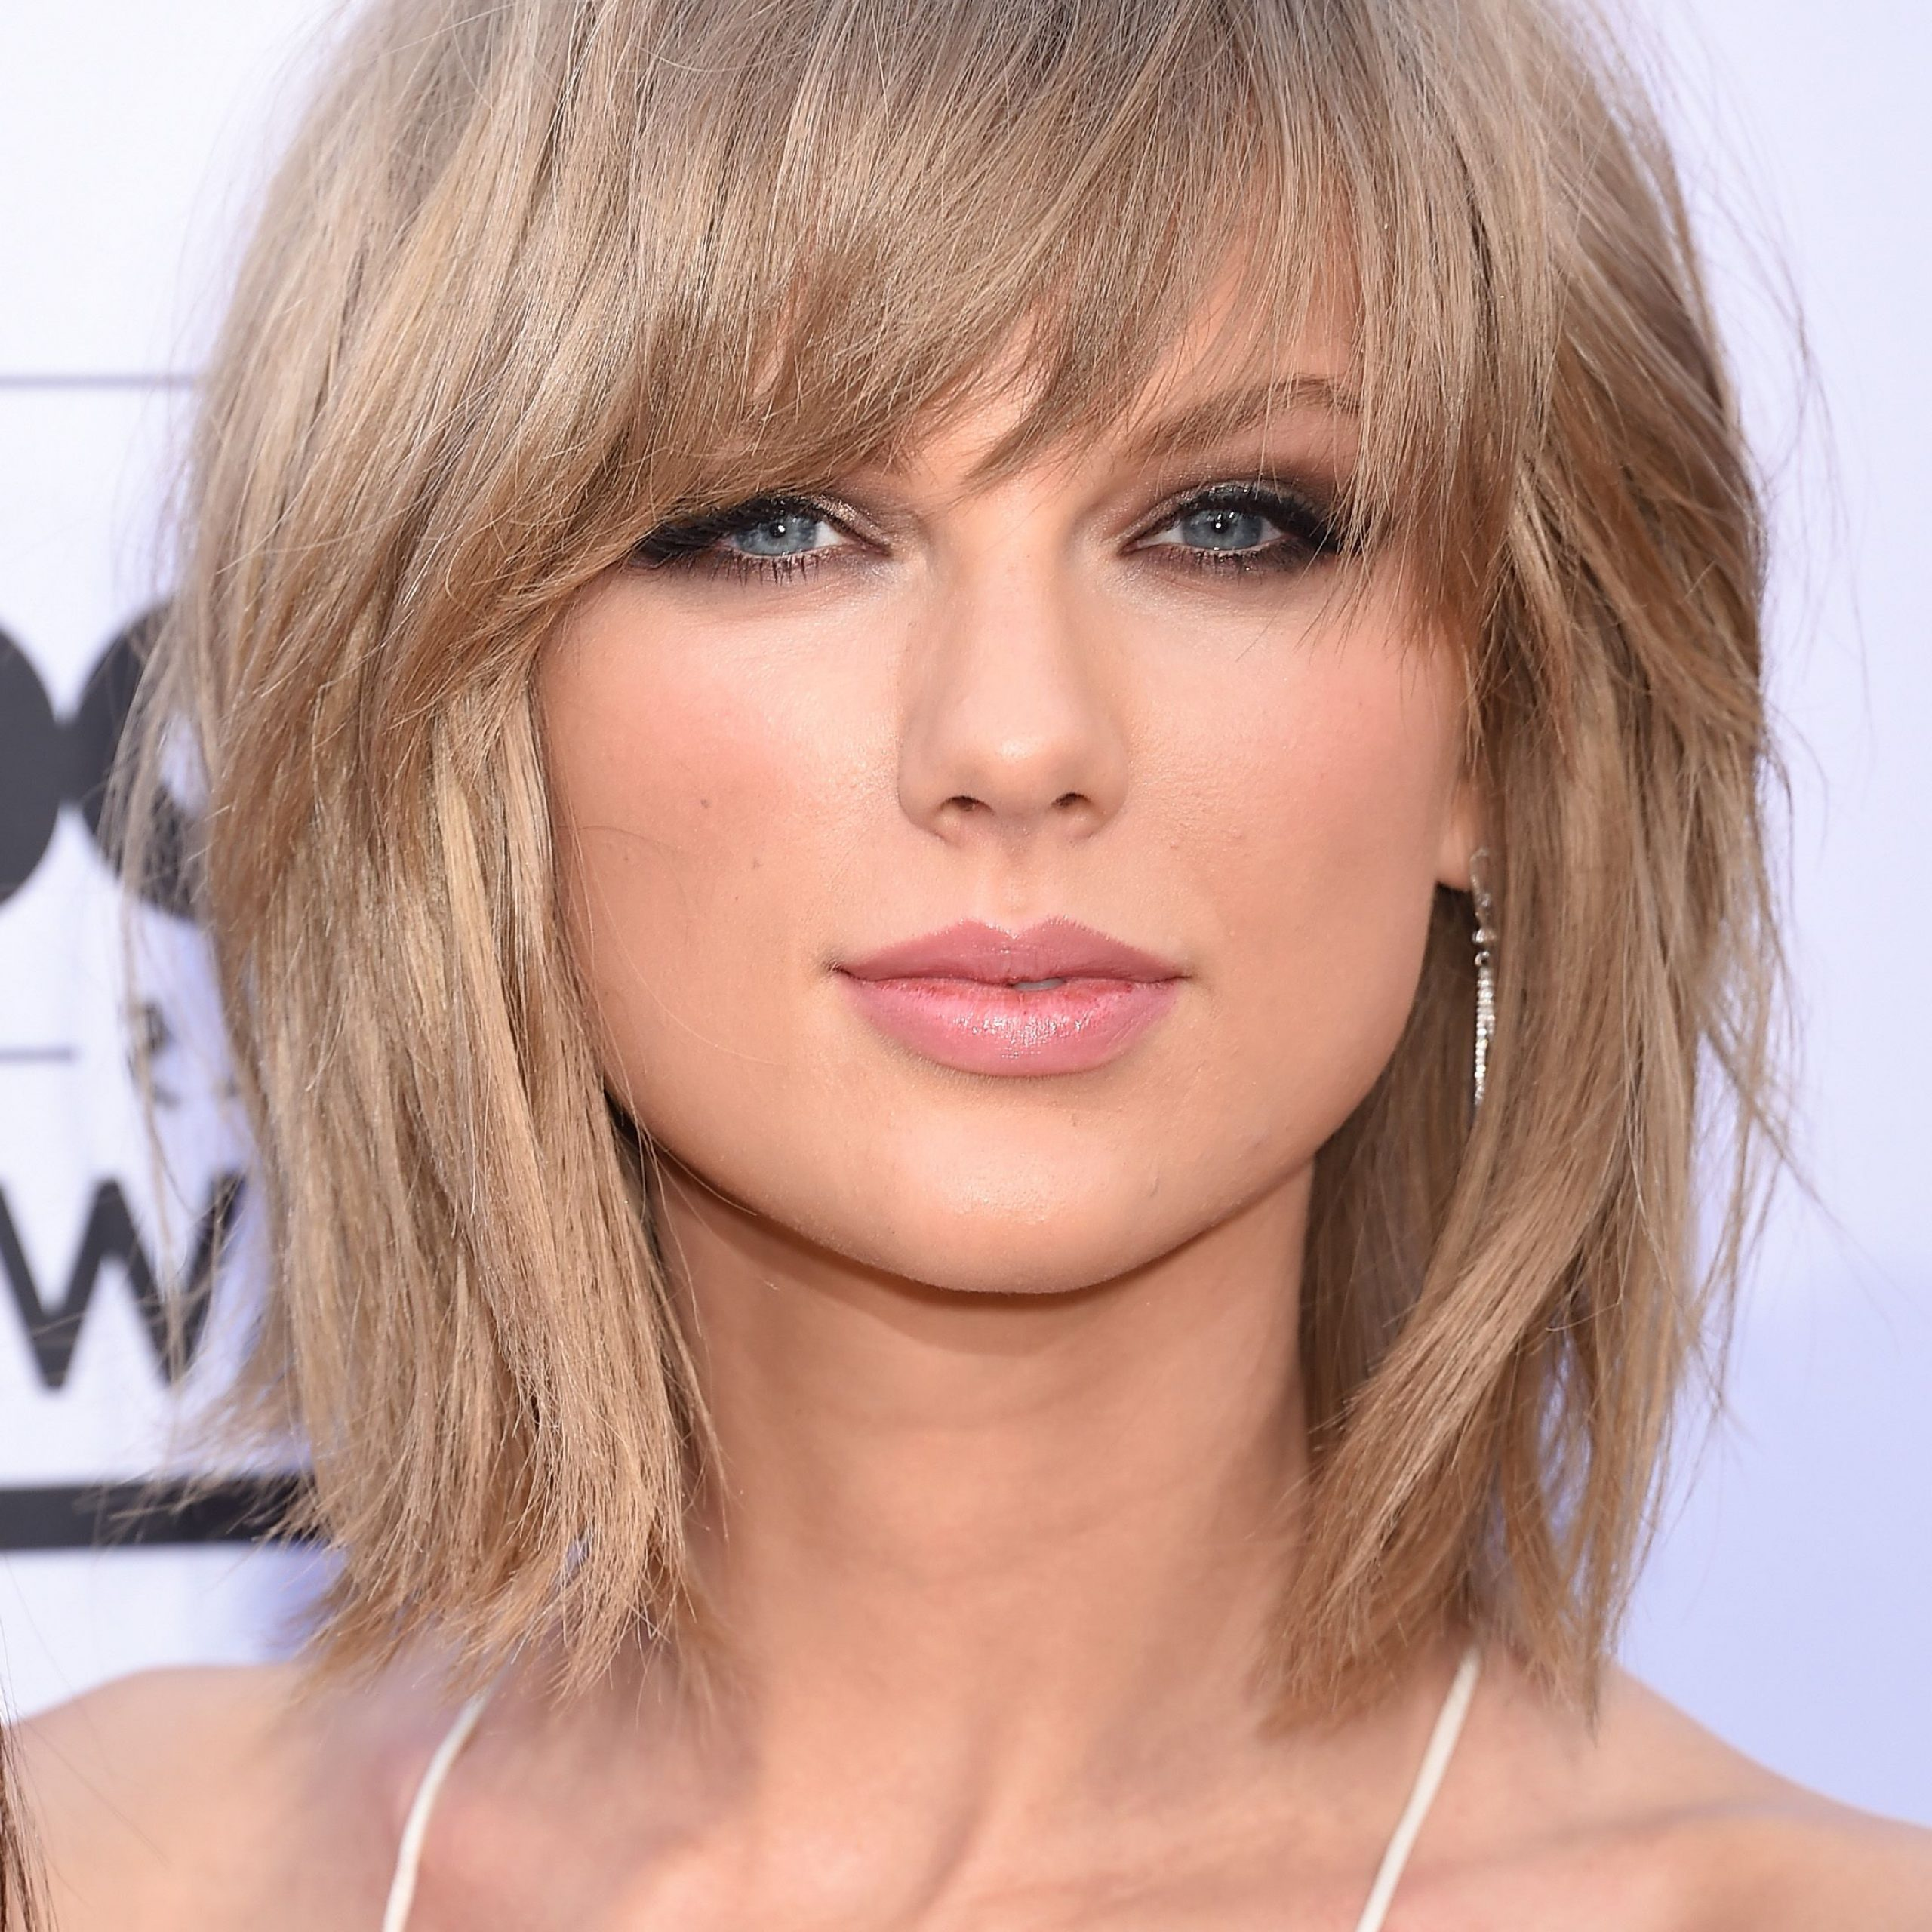 32 Celebrity Shag Haircut Ideas – Shag Hairstyle Long And Short For Waves Of Color Shag Haircuts (View 12 of 20)